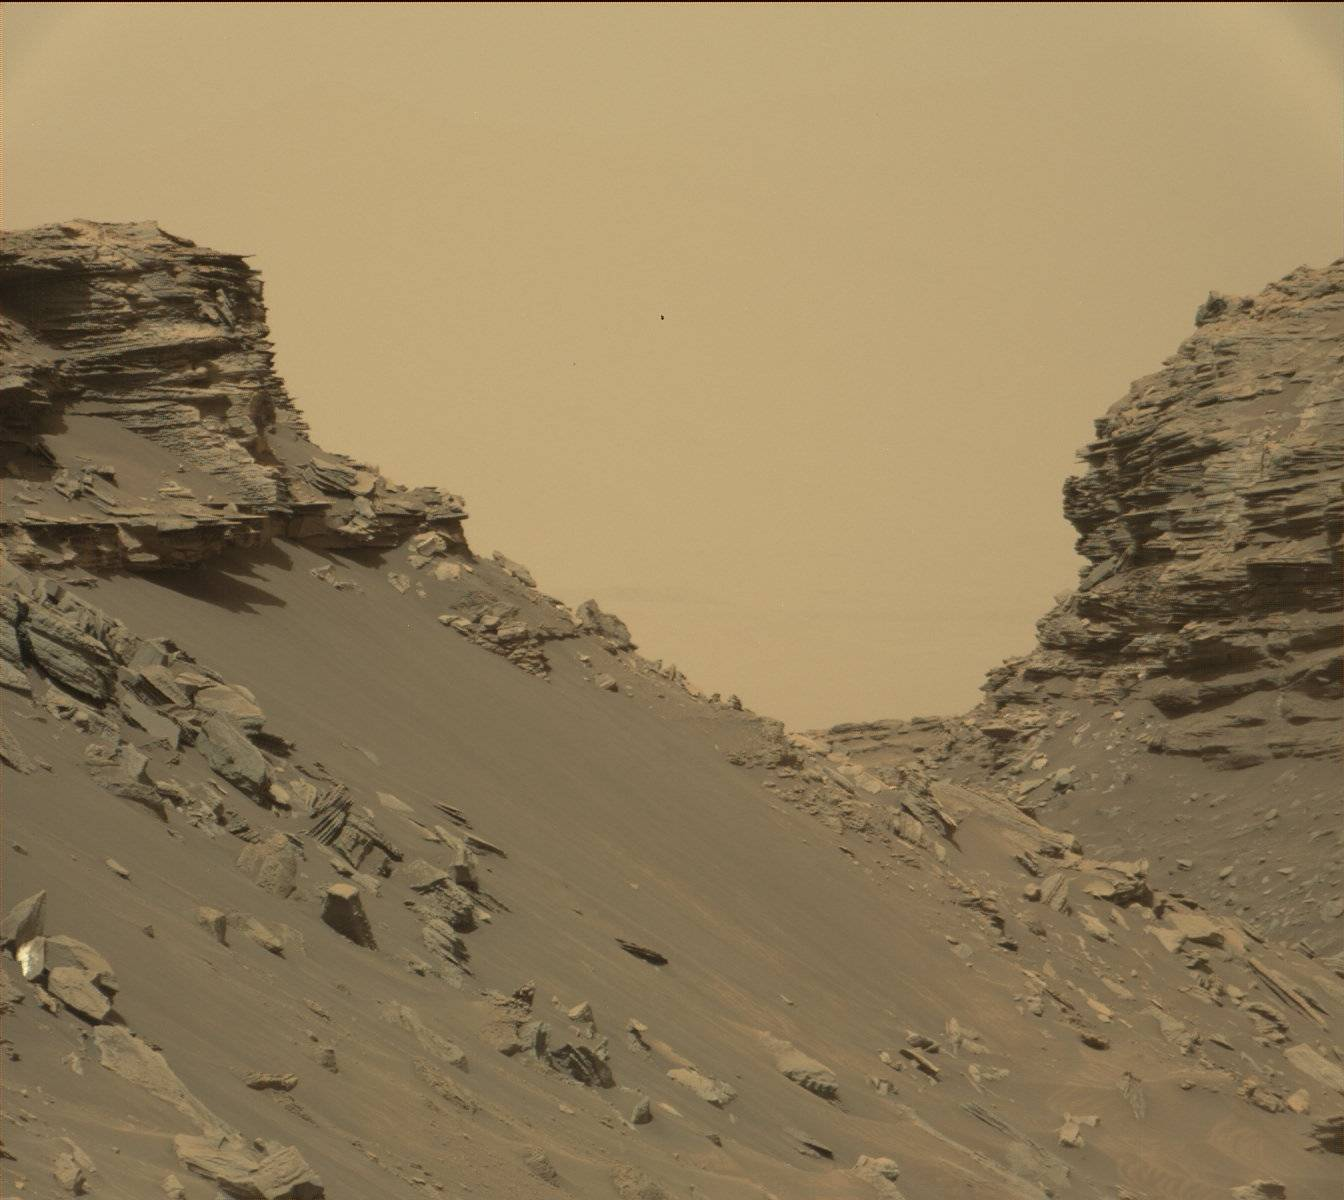 16-09-08-mars-curiosity-rover-msl-rock-layers-pia21042-full